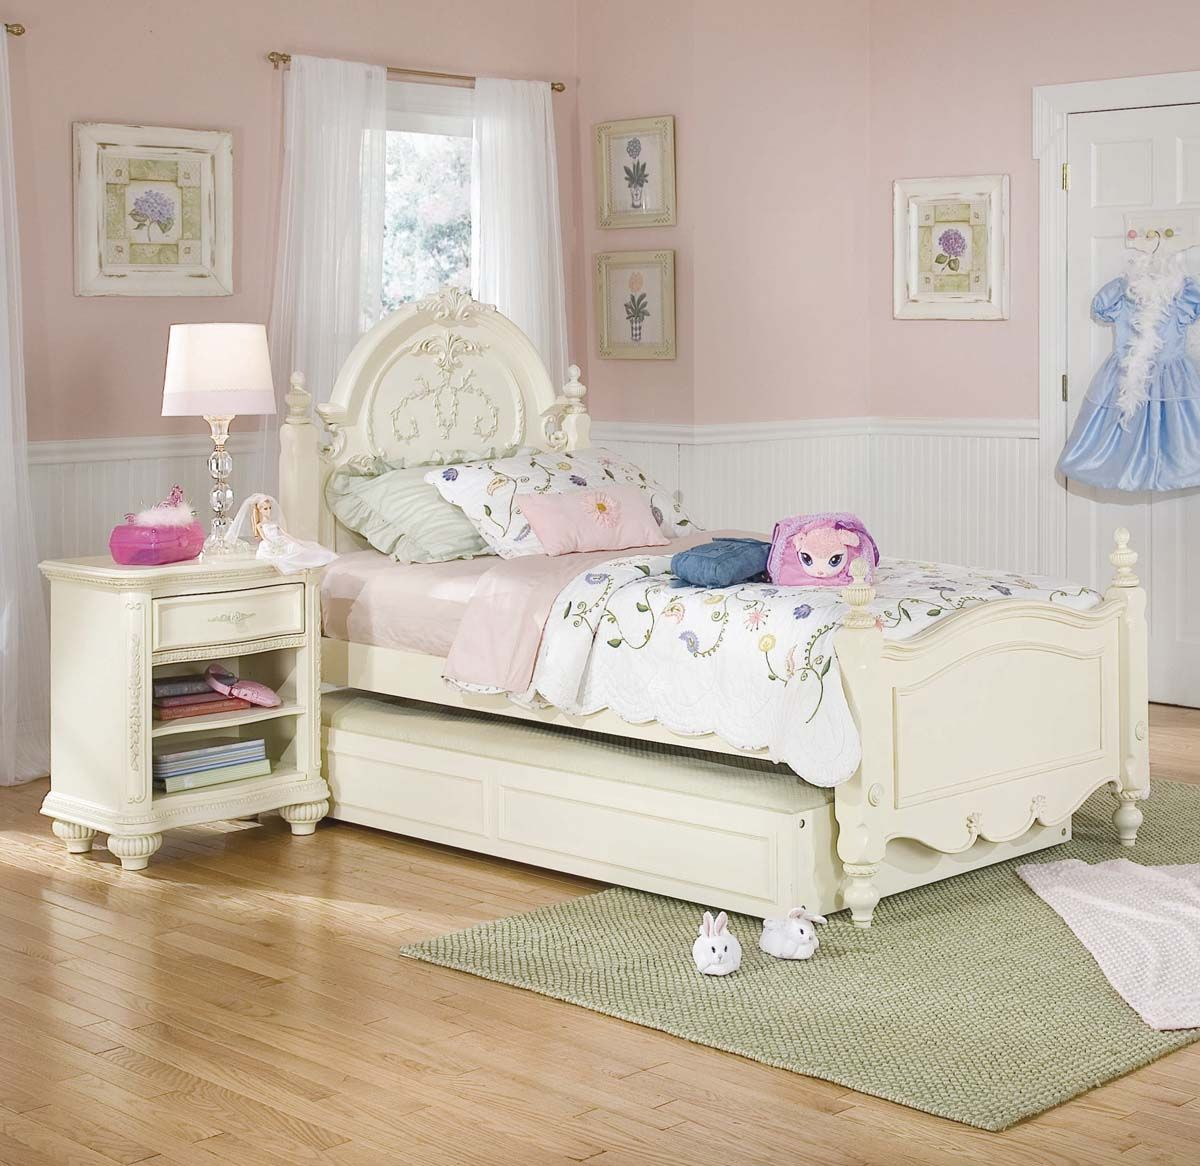 Girly Bedroom Furniture Uk: Kid Bedroom Soft Pink Bedroom Furniture Set Theme Color